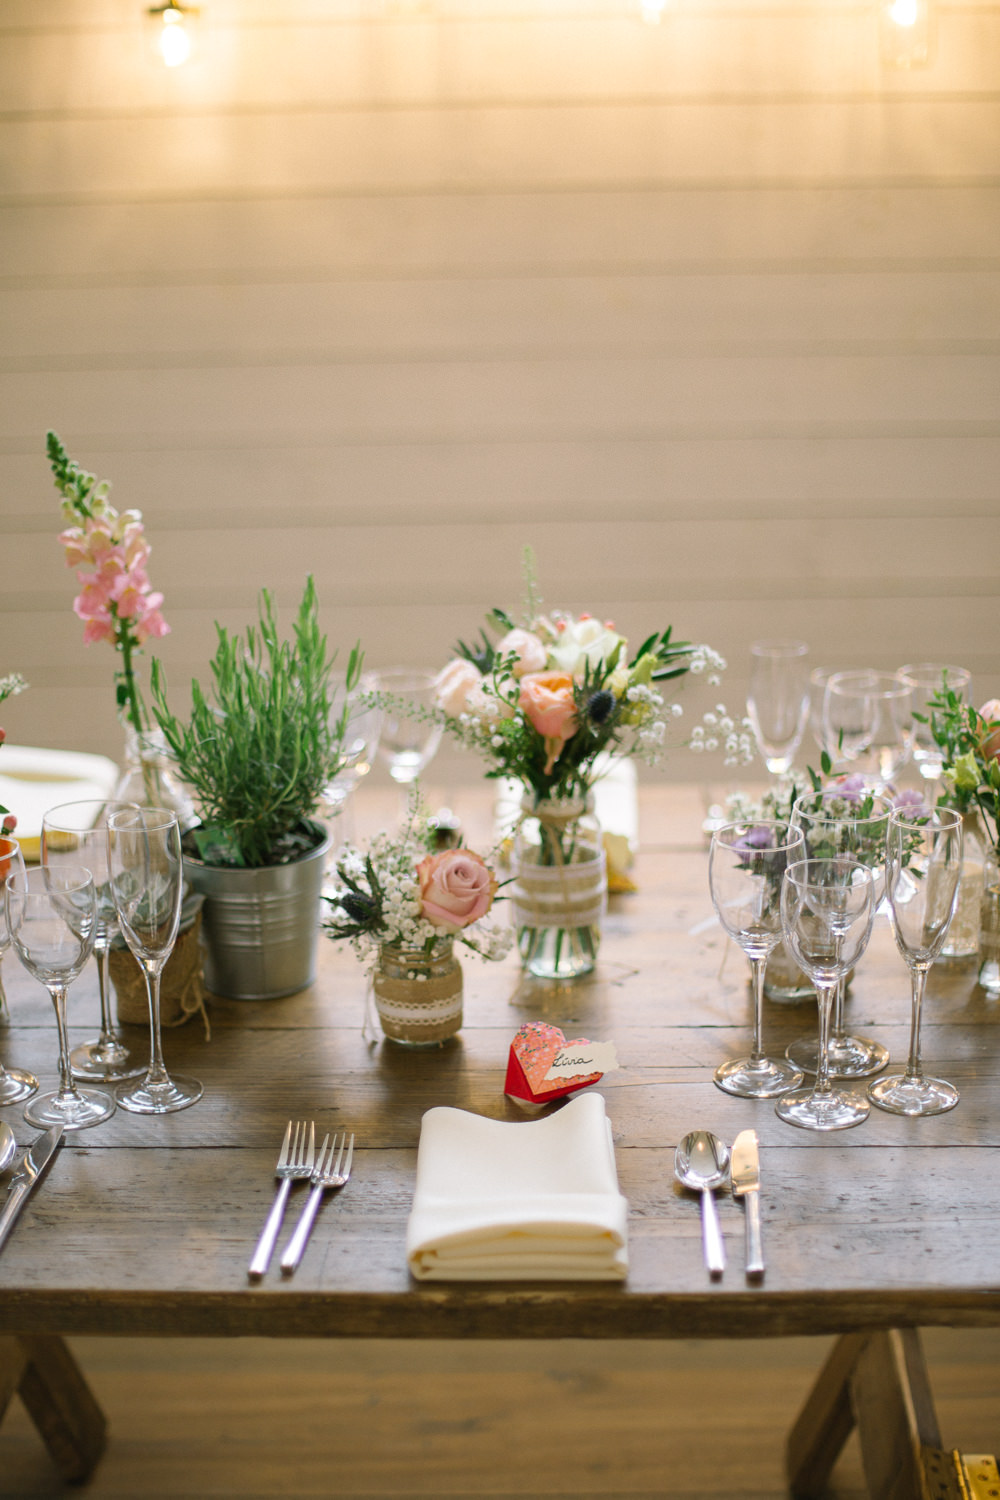 Burlap Hessian Jam Jar Lace Rosemary Flowers Floral Barn At Barra Castle Wedding Ceranna Photography